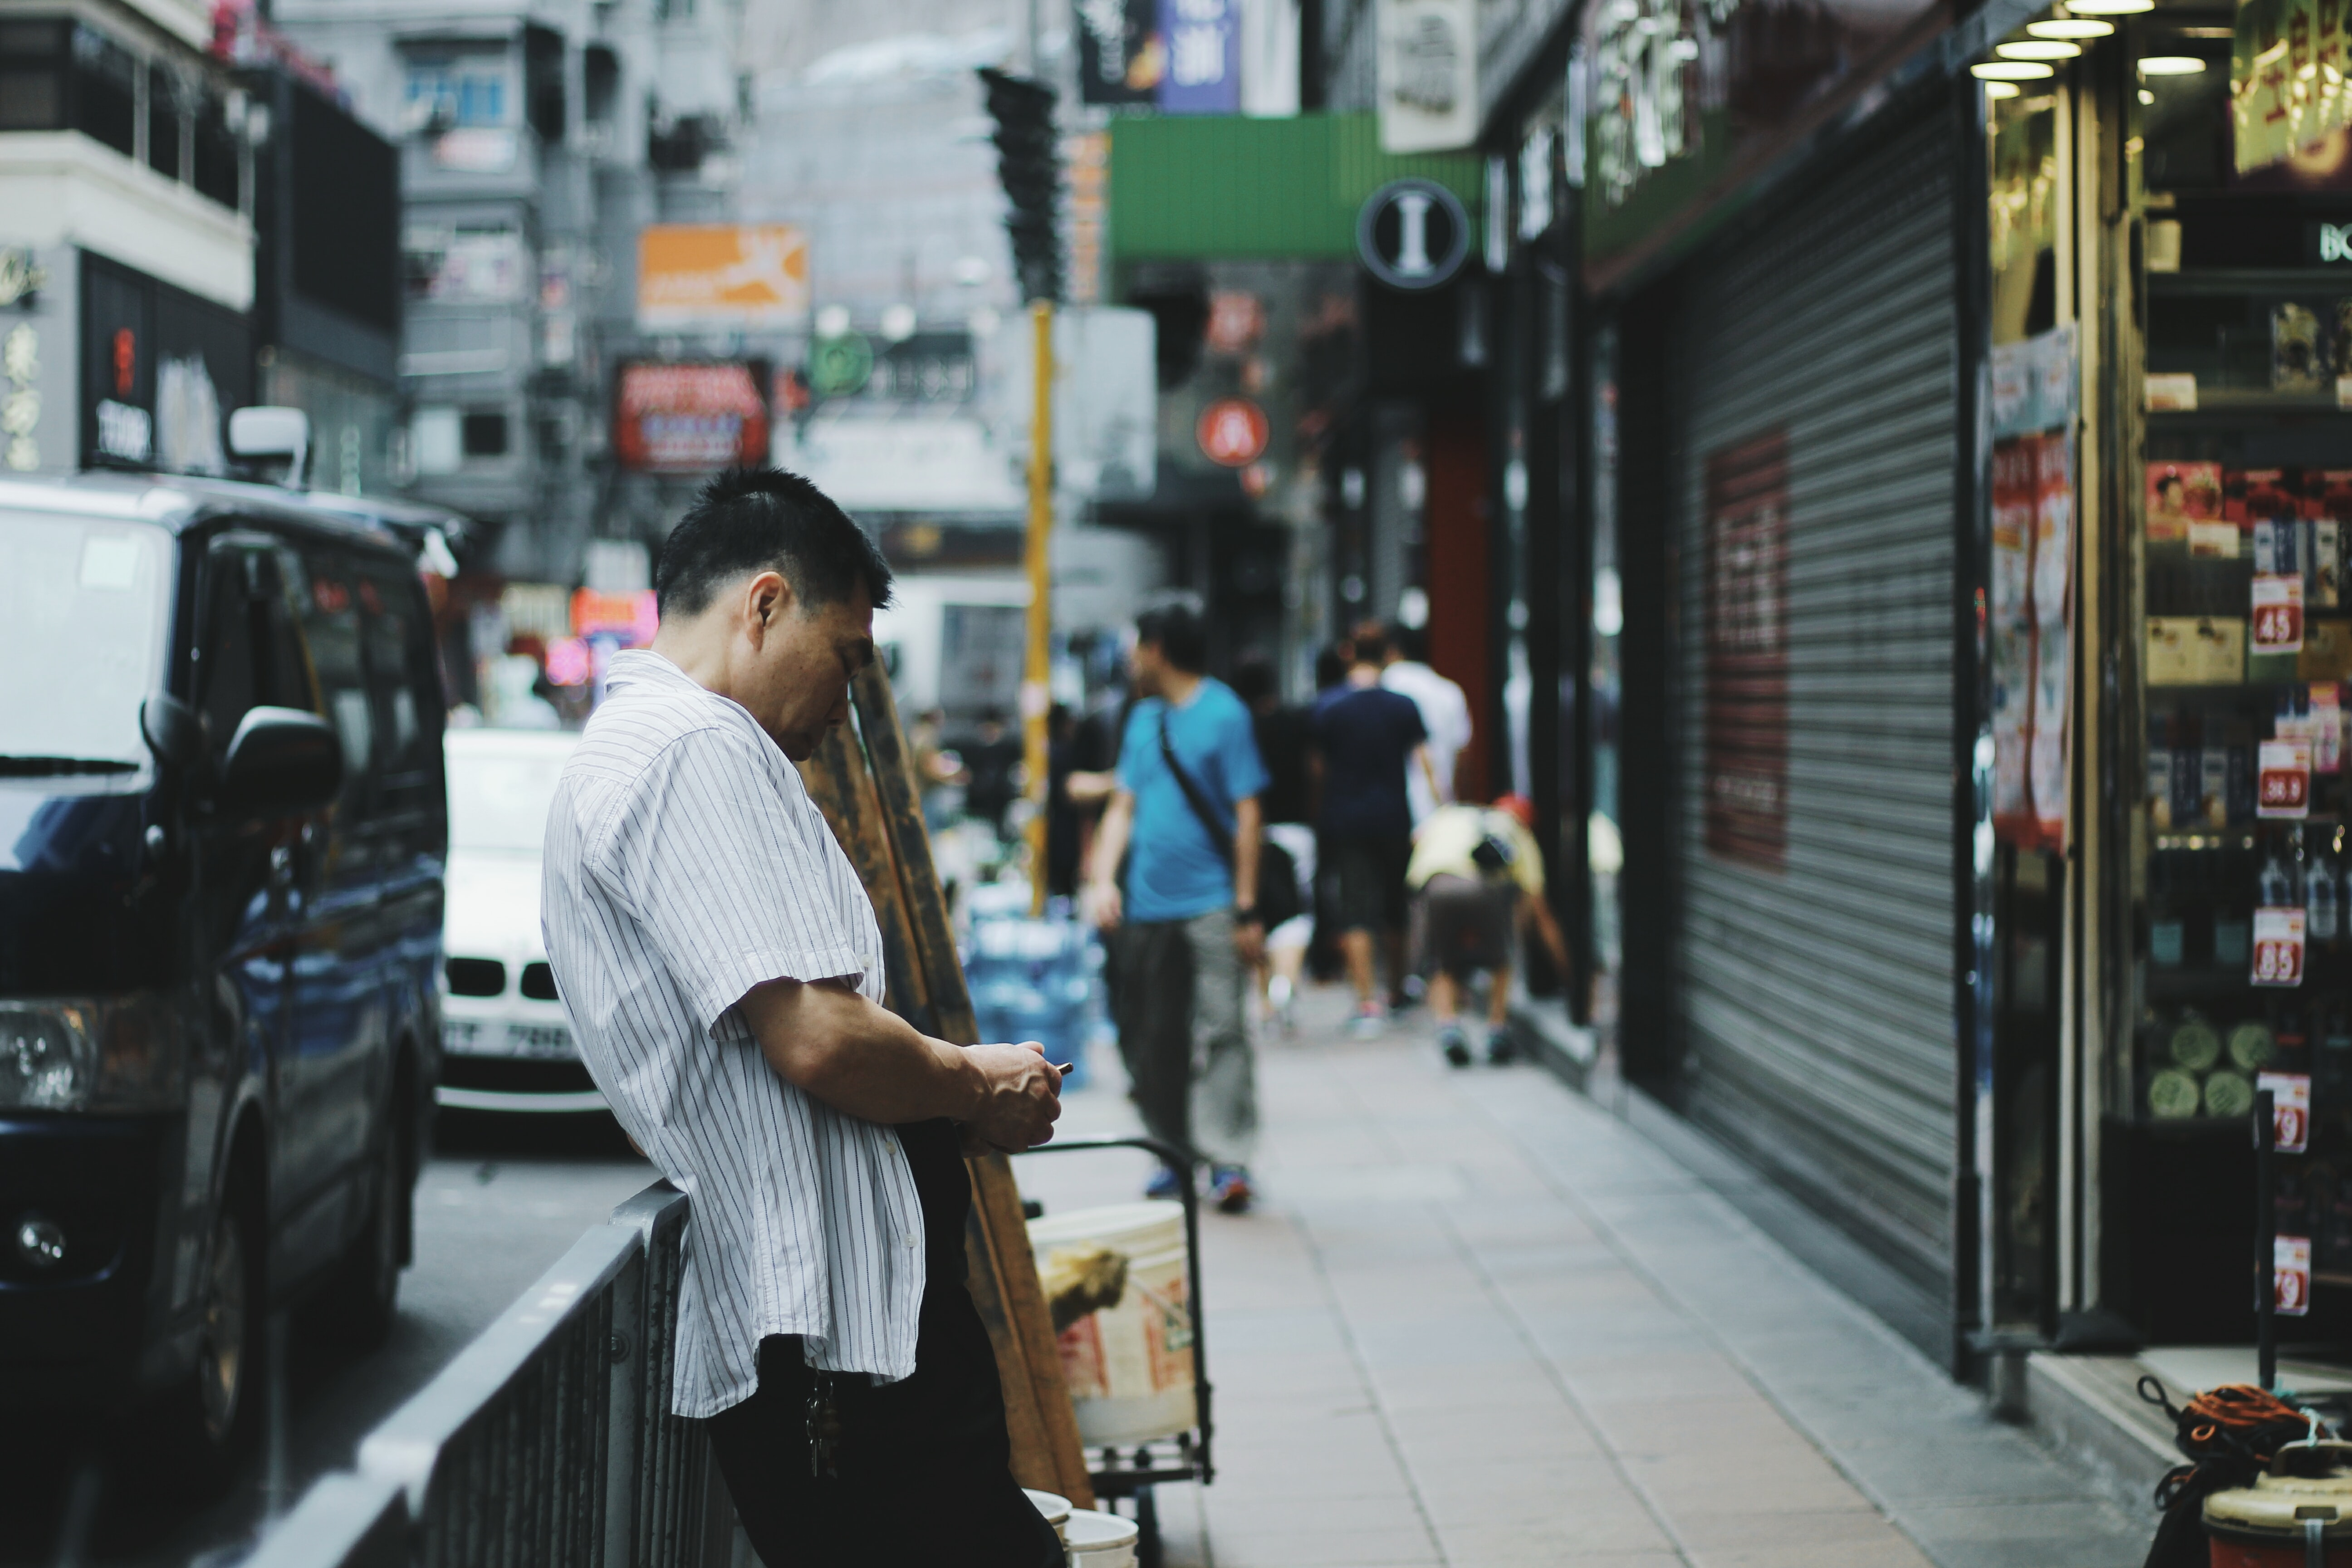 A man on the sidewalk looks down aside a city street and shops in Hong Kong